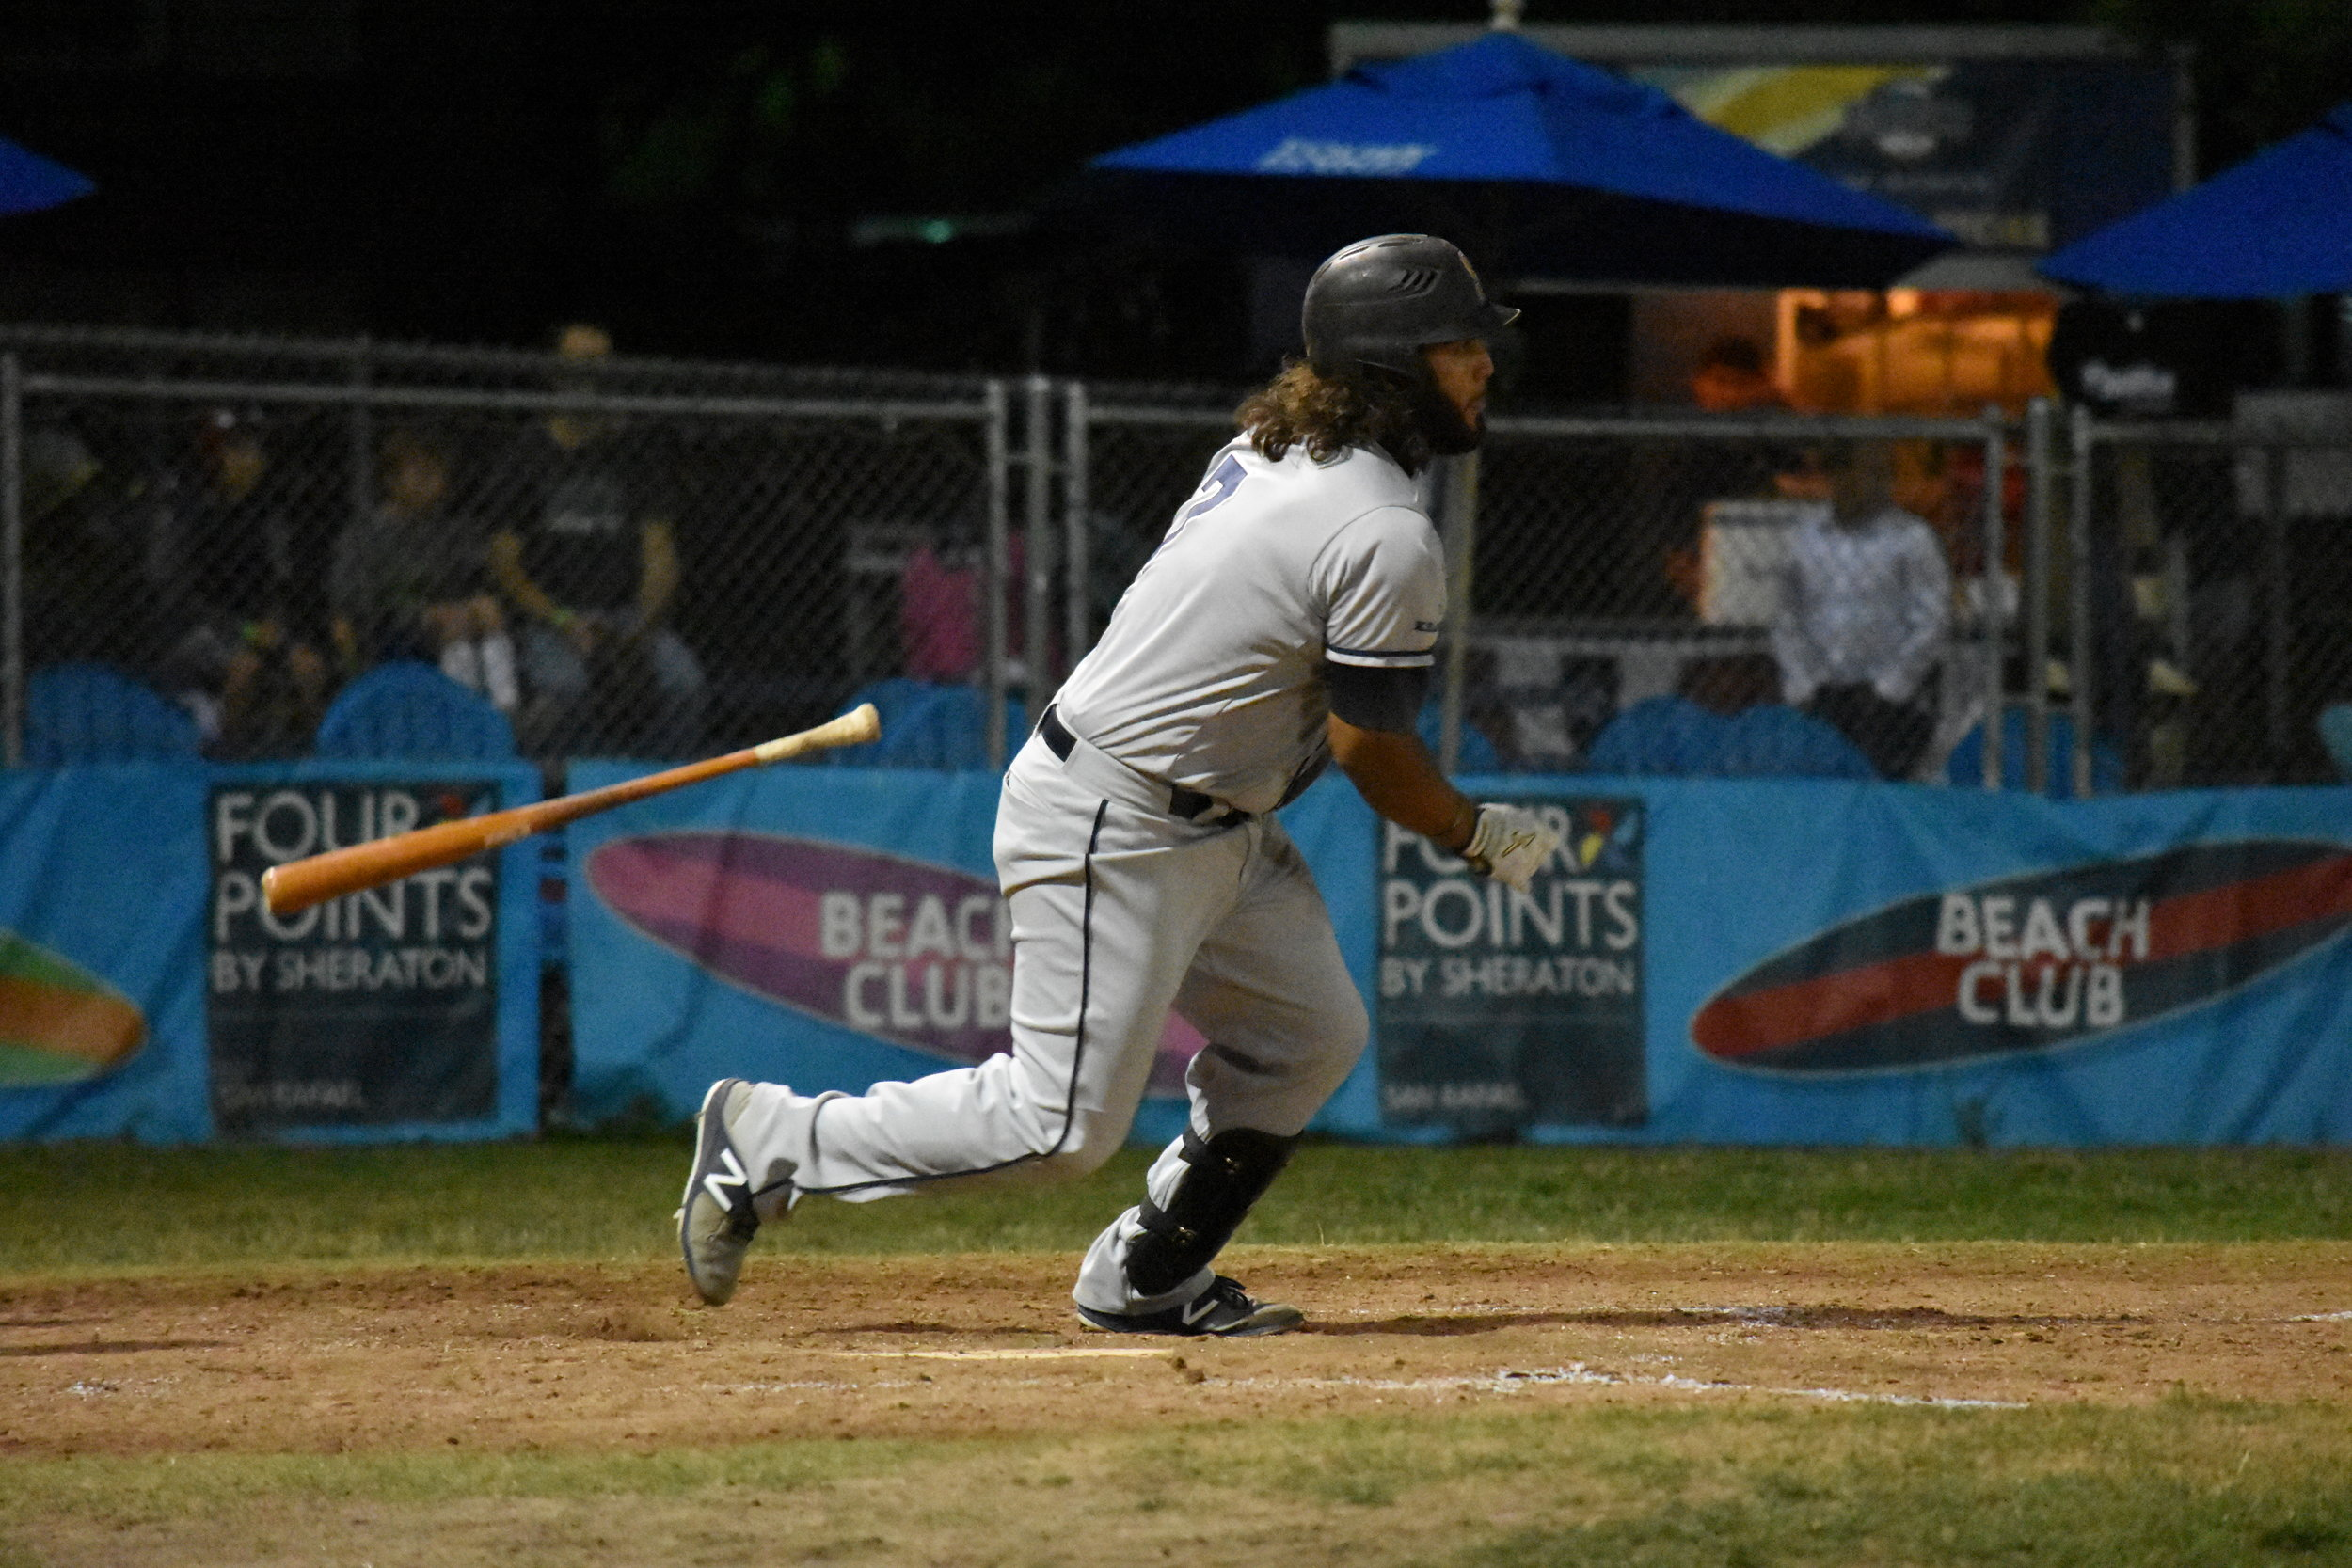 Joel Carranza went 2 for 4 with three RBIs in Tuesday's 8-3 trouncing of the San Rafael Pacifics at Albert Park. (James W. Toy III / Sonoma Stompers)